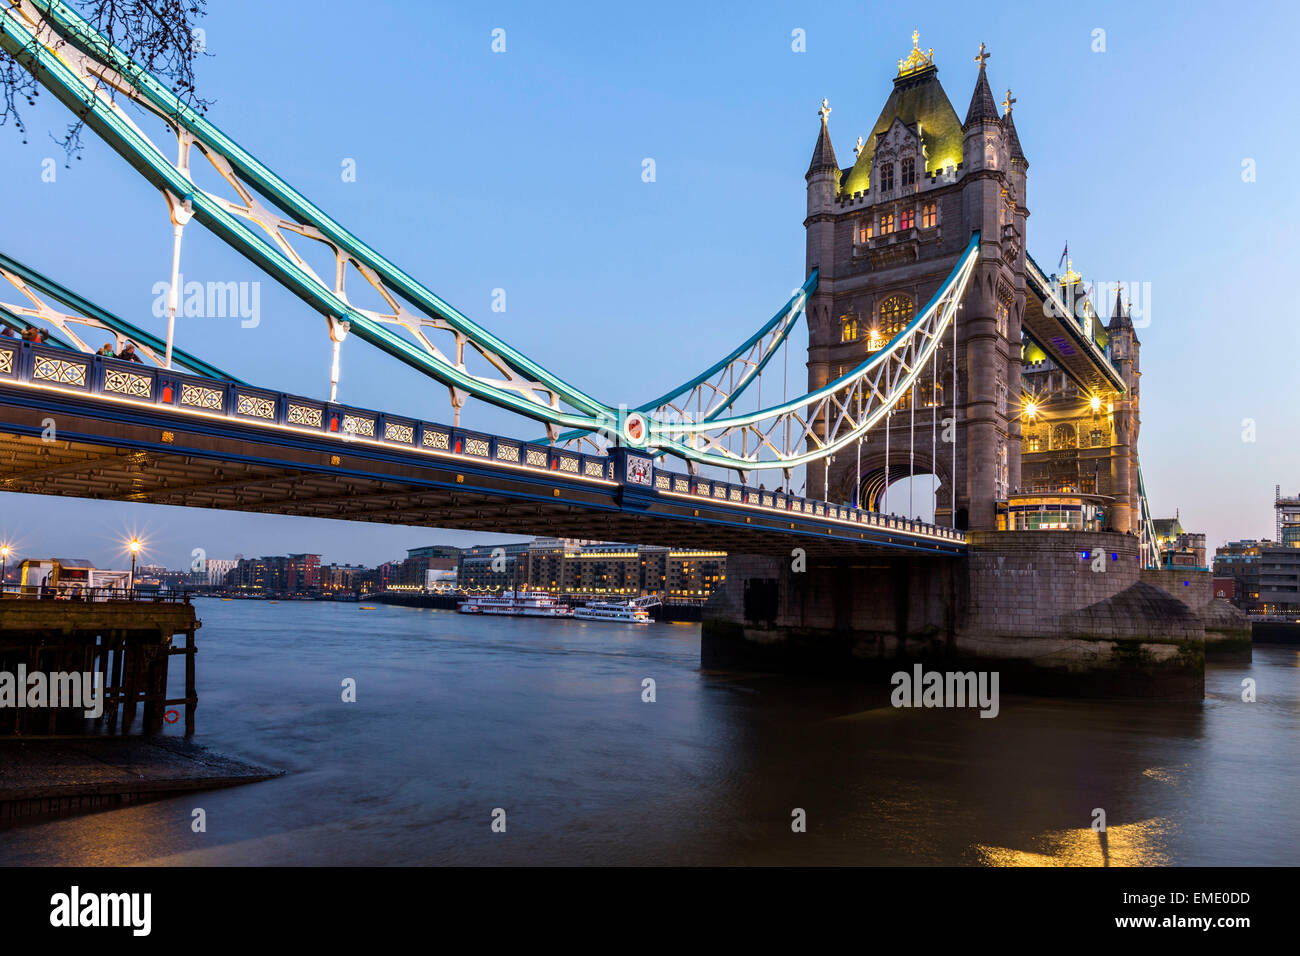 Tower Bridge in London, UK - Stock Image